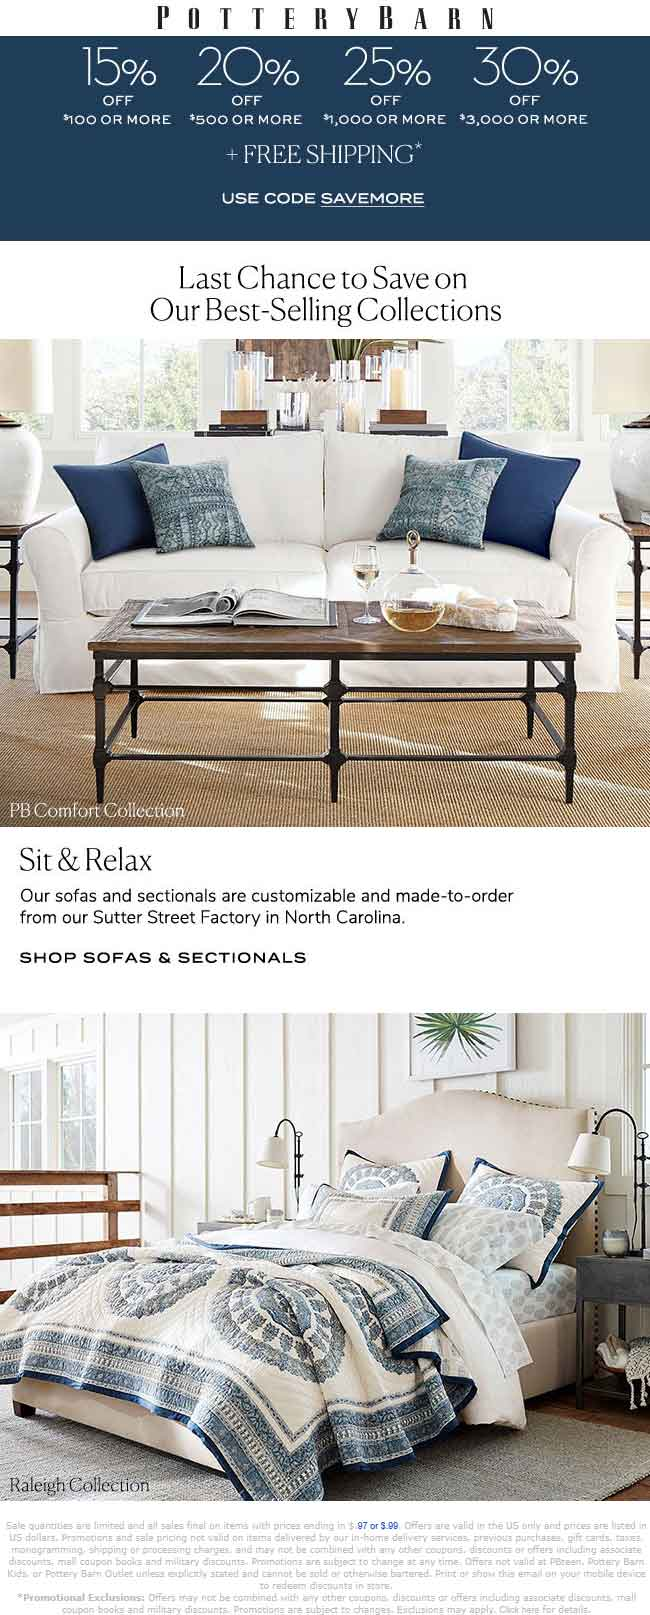 Pottery Barn coupons & promo code for [June 2020]